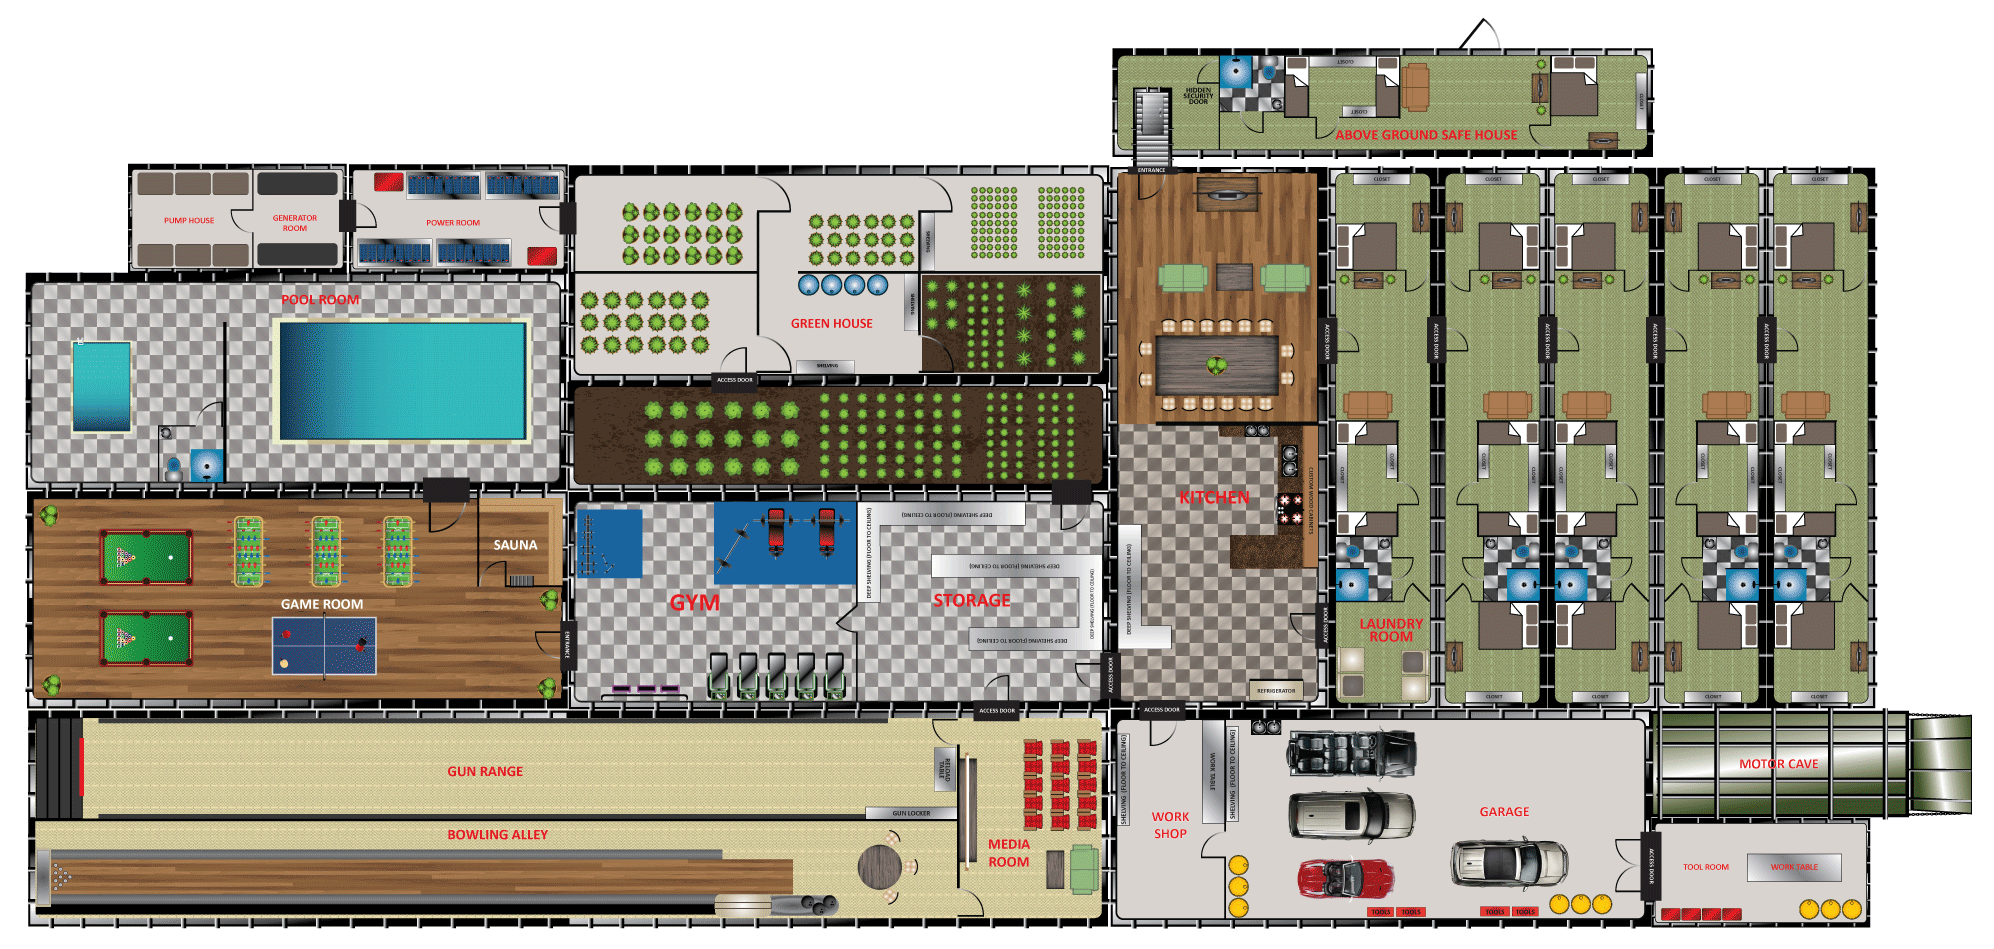 Bunker floor plans and pricing for models of various sizes rising s bunker floor plans and pricing for models of various sizes rising s bunkers also makes custom bunkers to suit every need and budget learn about our bunkers malvernweather Gallery